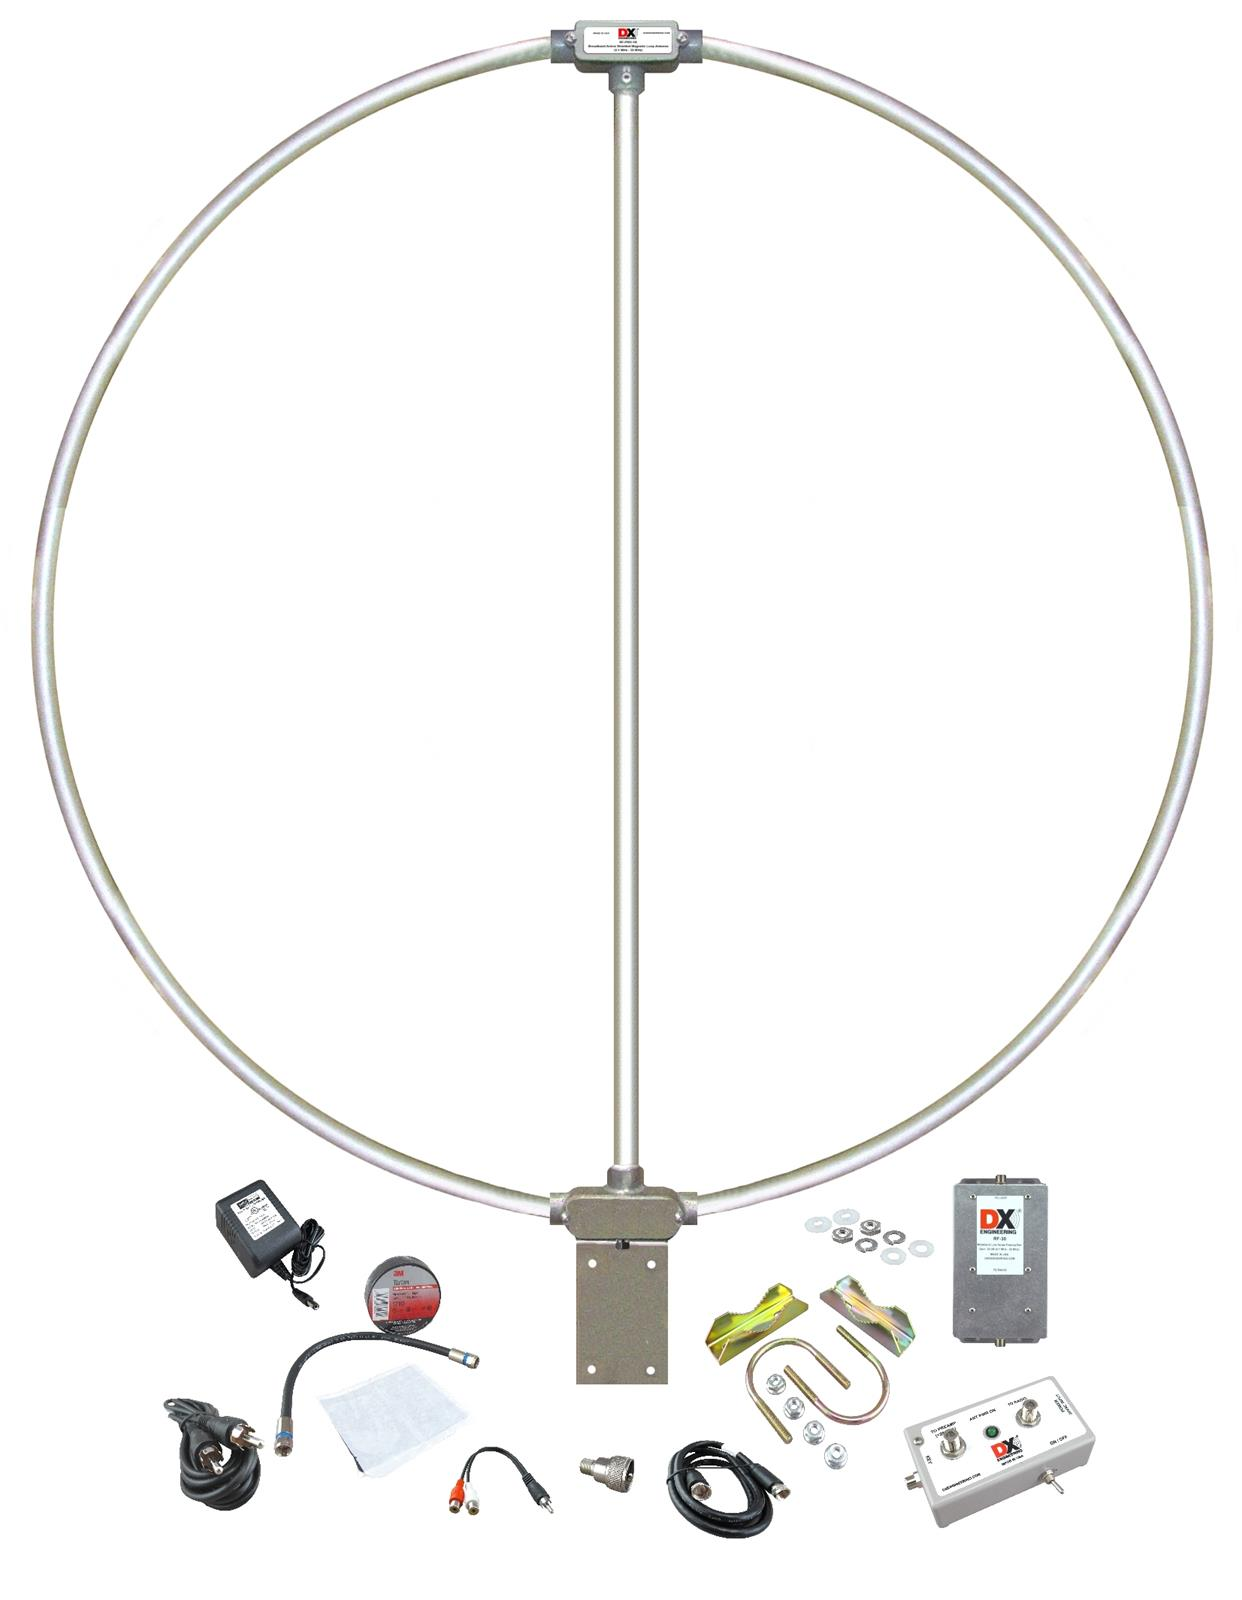 Dx Engineering Rf Pro 1b Active Magnetic Loop Antennas Dxe Antenna Circuit Diagram Free Shipping On Most Orders Over 99 At